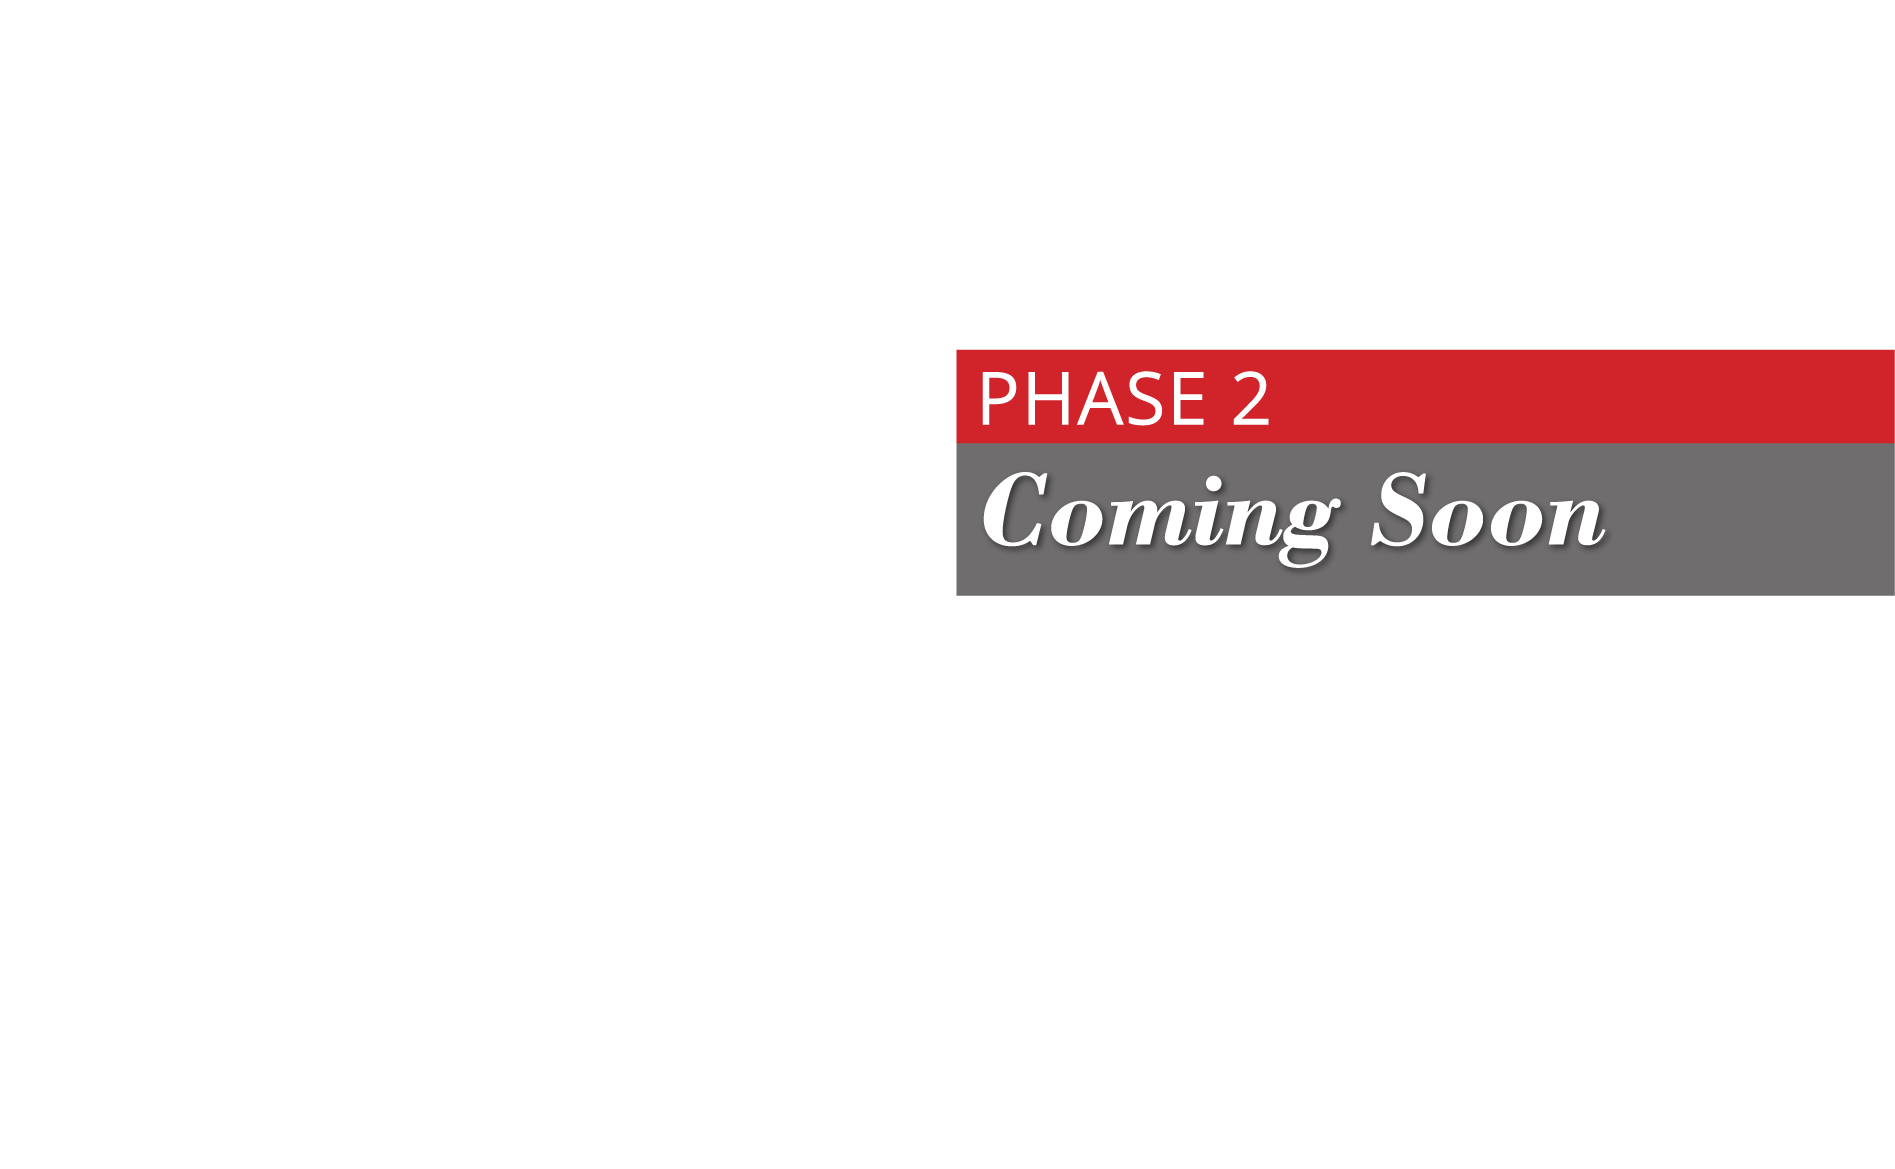 Phase 2 Coming Soon